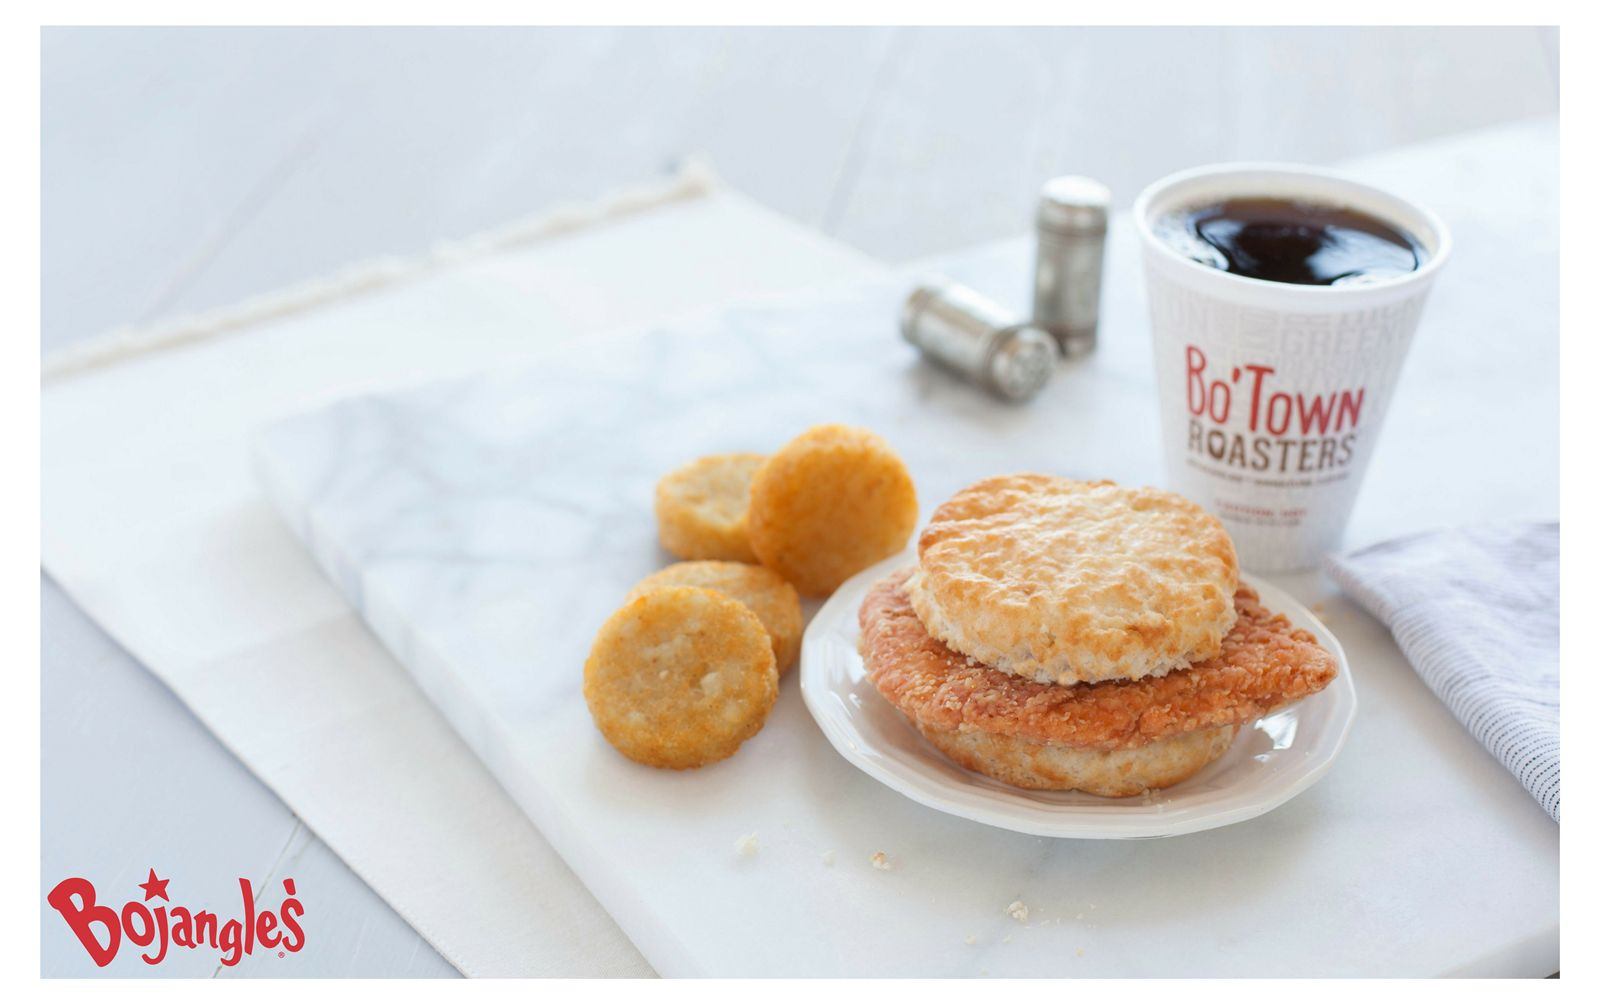 The One, The Only: Bojangles' Cajun Filet Biscuit